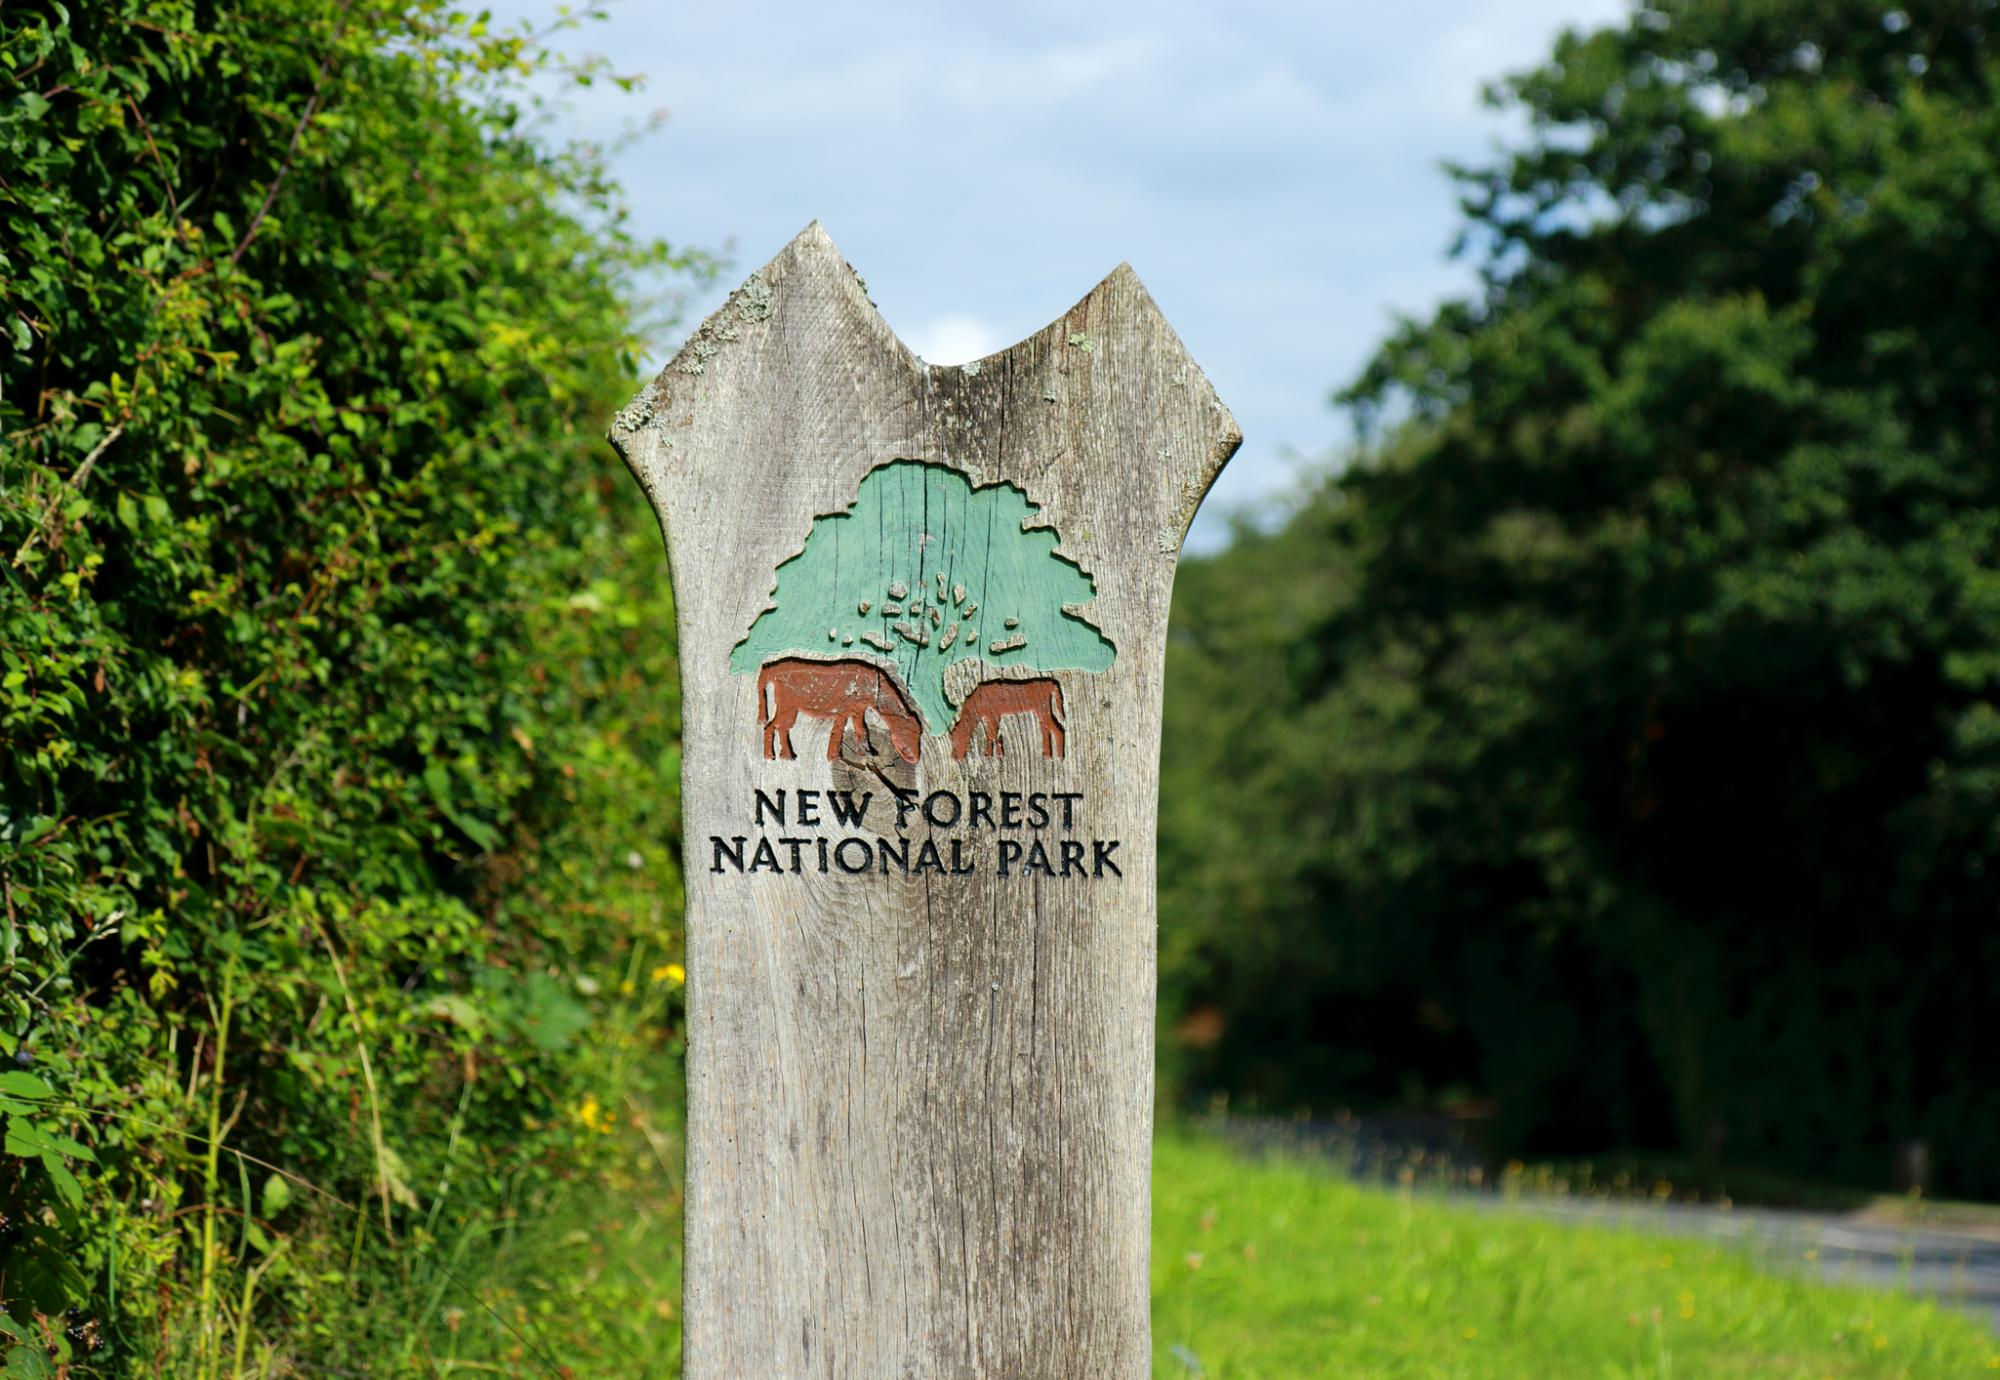 New Forest National Park sign